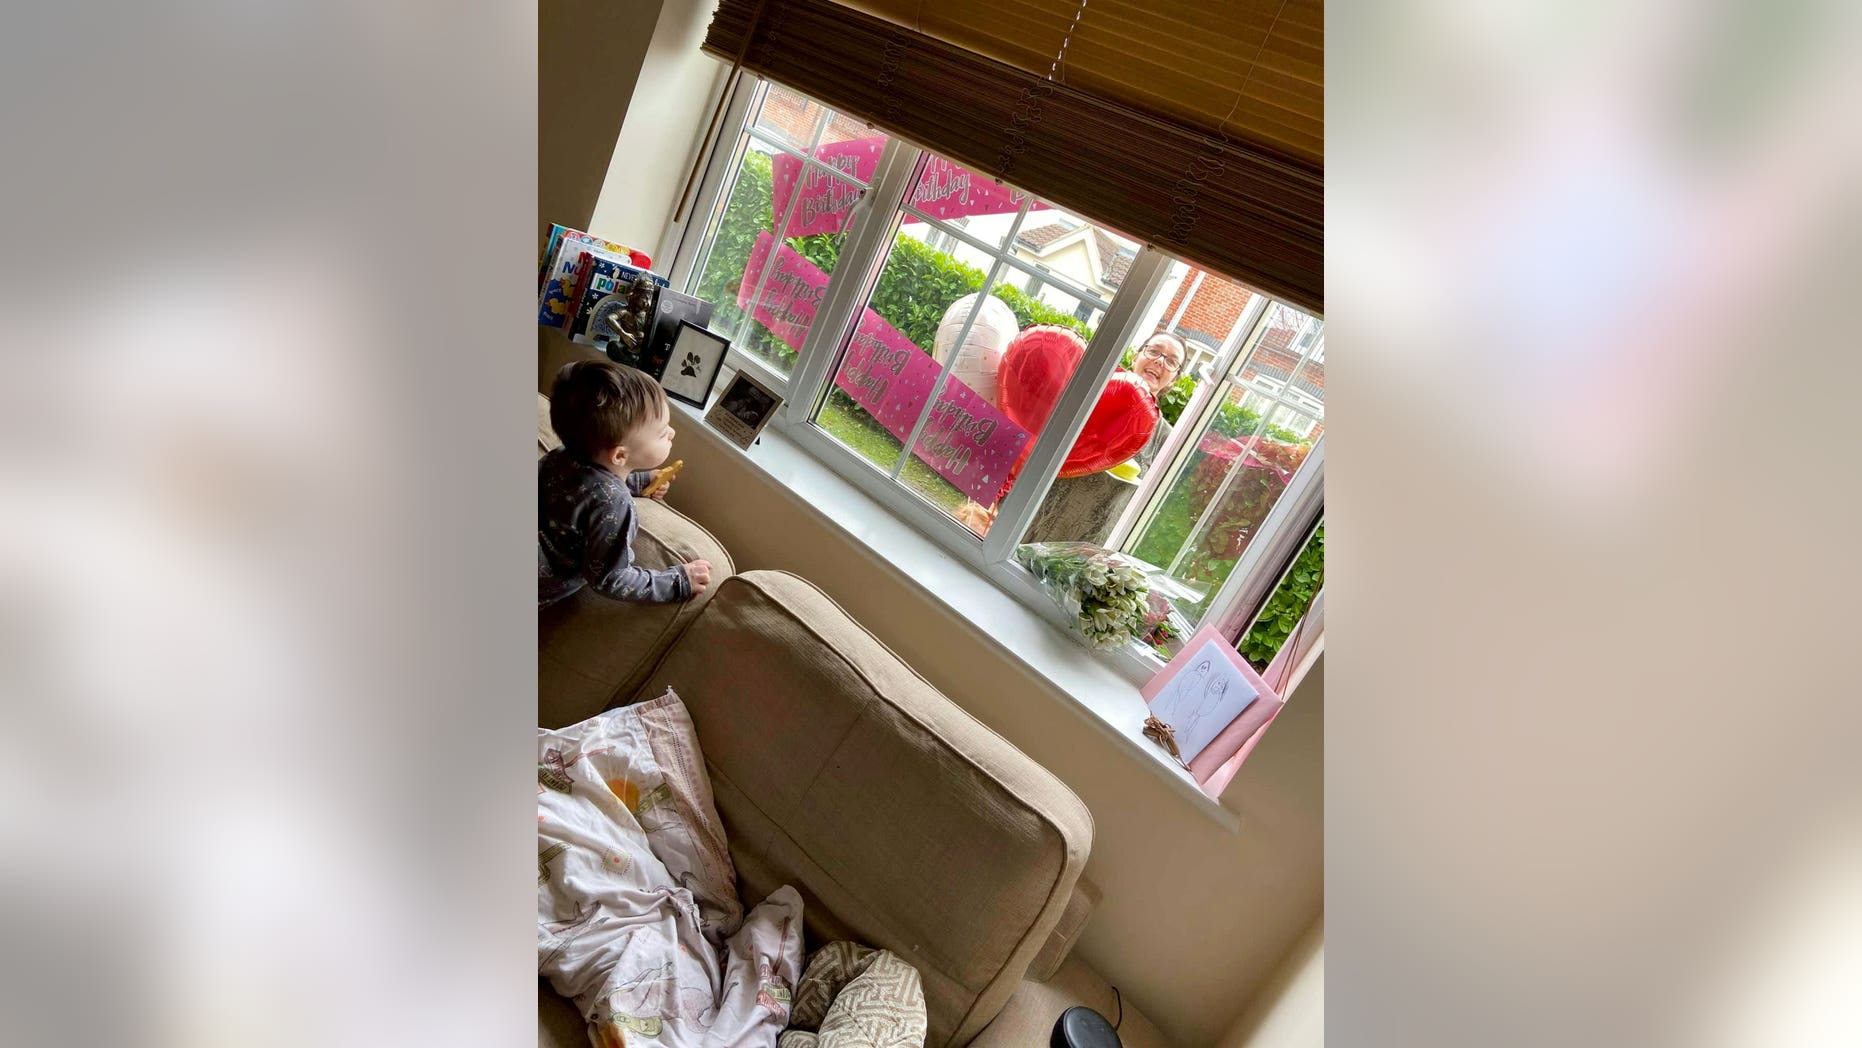 To avoid coronavirus, which doctors said could be fatal, Angel Wood is self-isolating - meaning her mom Sally Wood, 53, couldn't set up her usual banners, balloons, cake and gifts in the living room.